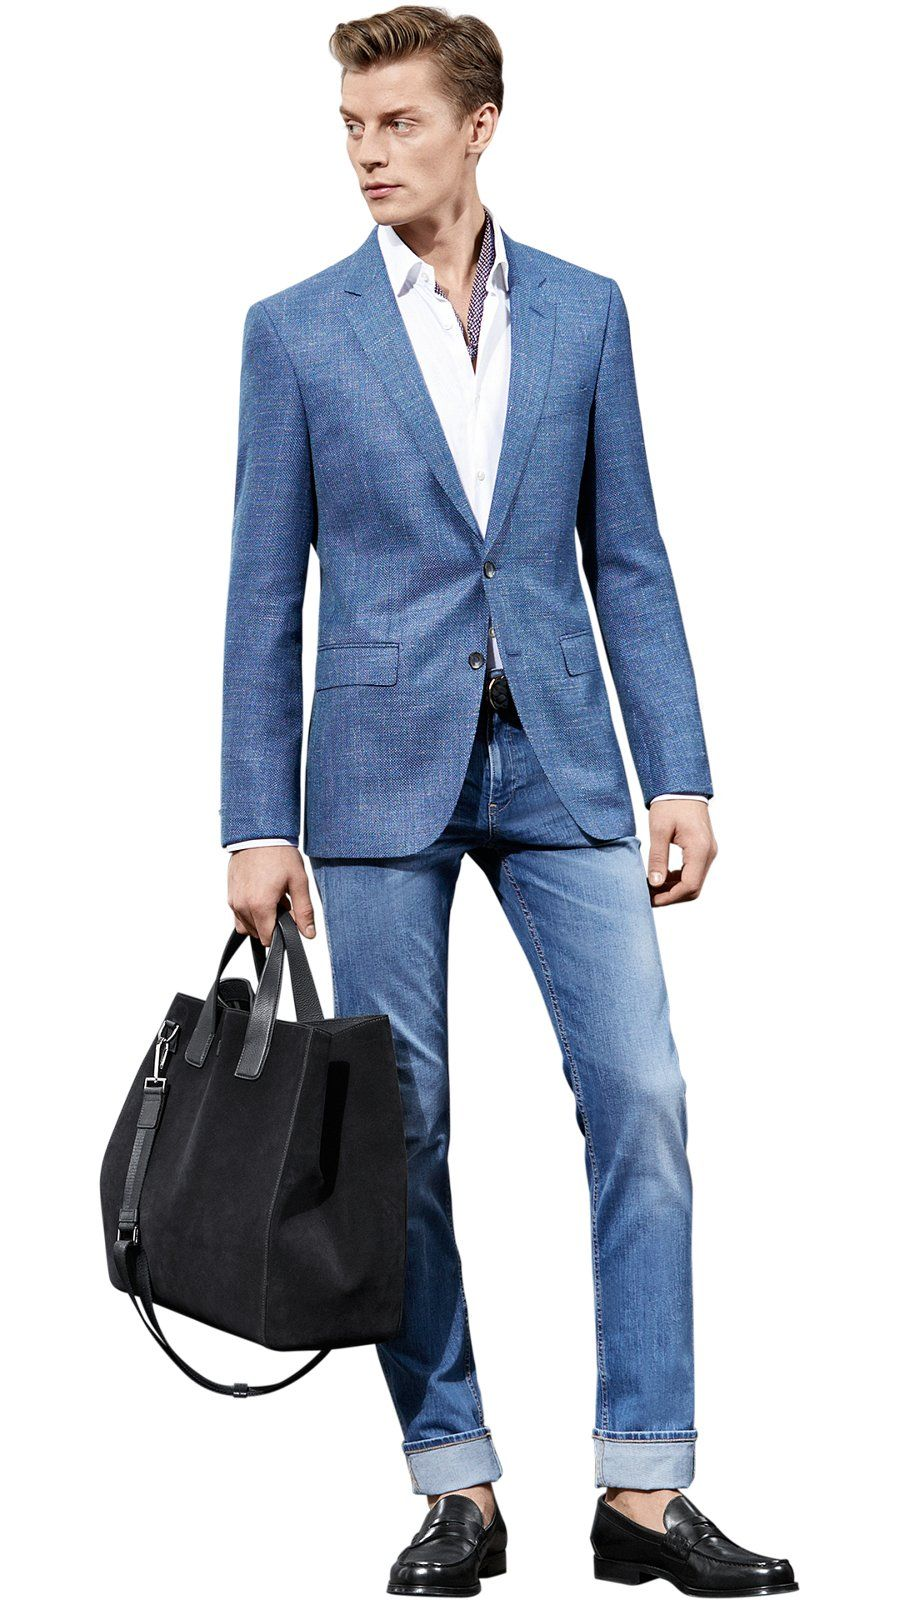 6cabb2cd3 Man is wearing a BOSS tailored blue jacket over a BOSS white shirt with BOSS  jeans, large leather good and shoes